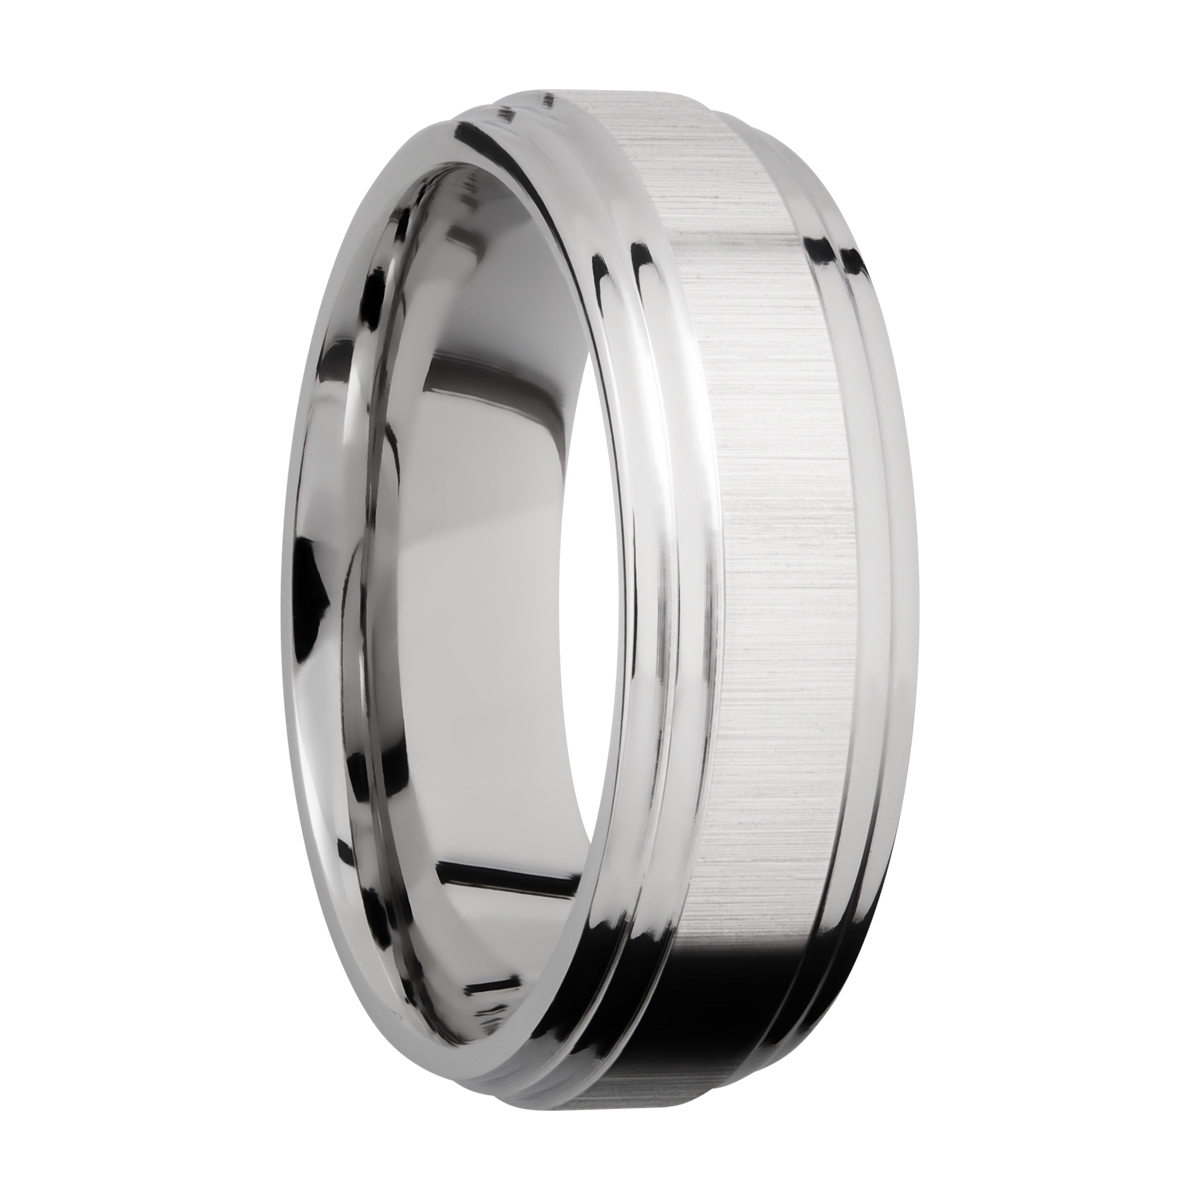 Lashbrook CC7F2S Cobalt Chrome Wedding Ring or Band Alternative View 1